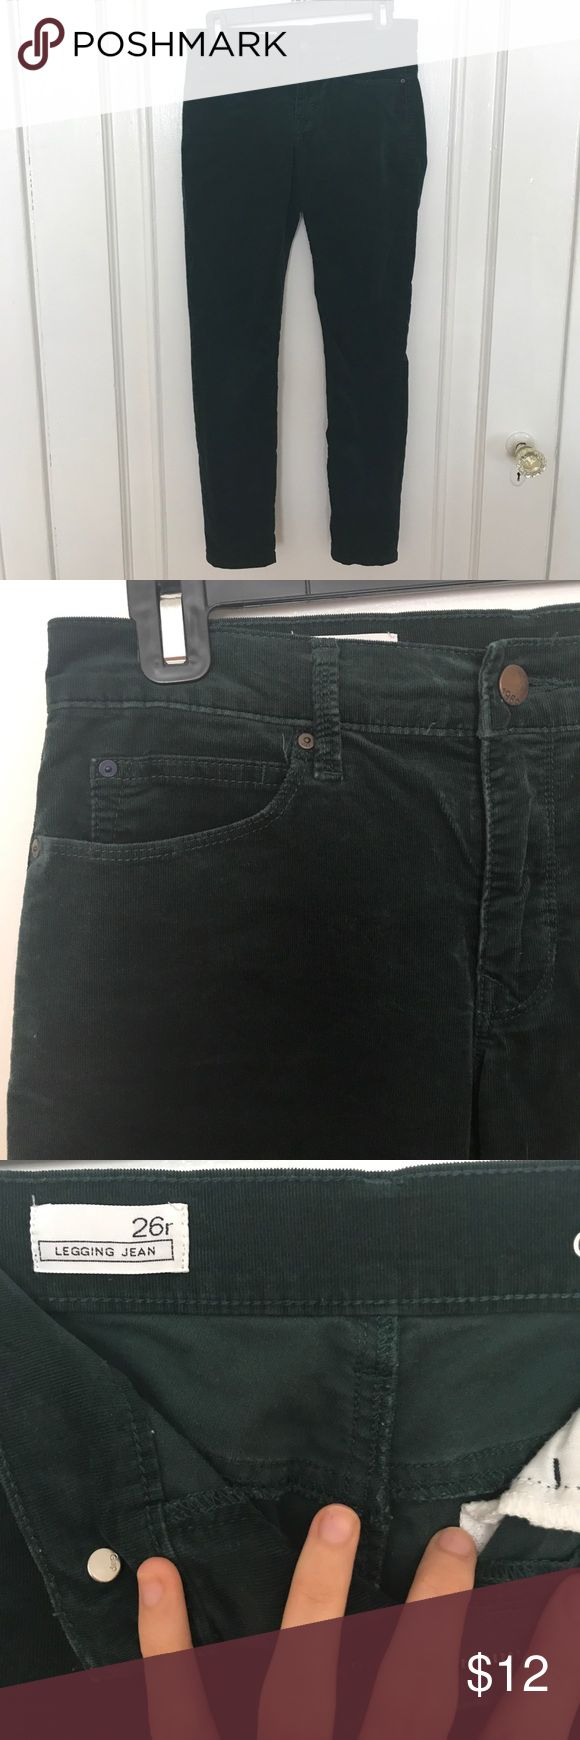 Evergreen Corduroy Legging Jeans Gorgeous evergreen corduroy Legging Jean by Gap. Size 26/ 2. Skinny fit. In good condition. These are the most comfortable jeans I've ever owned! Have same pants in plum color available in different listing. No trades please but open to offers. GAP Jeans Skinny